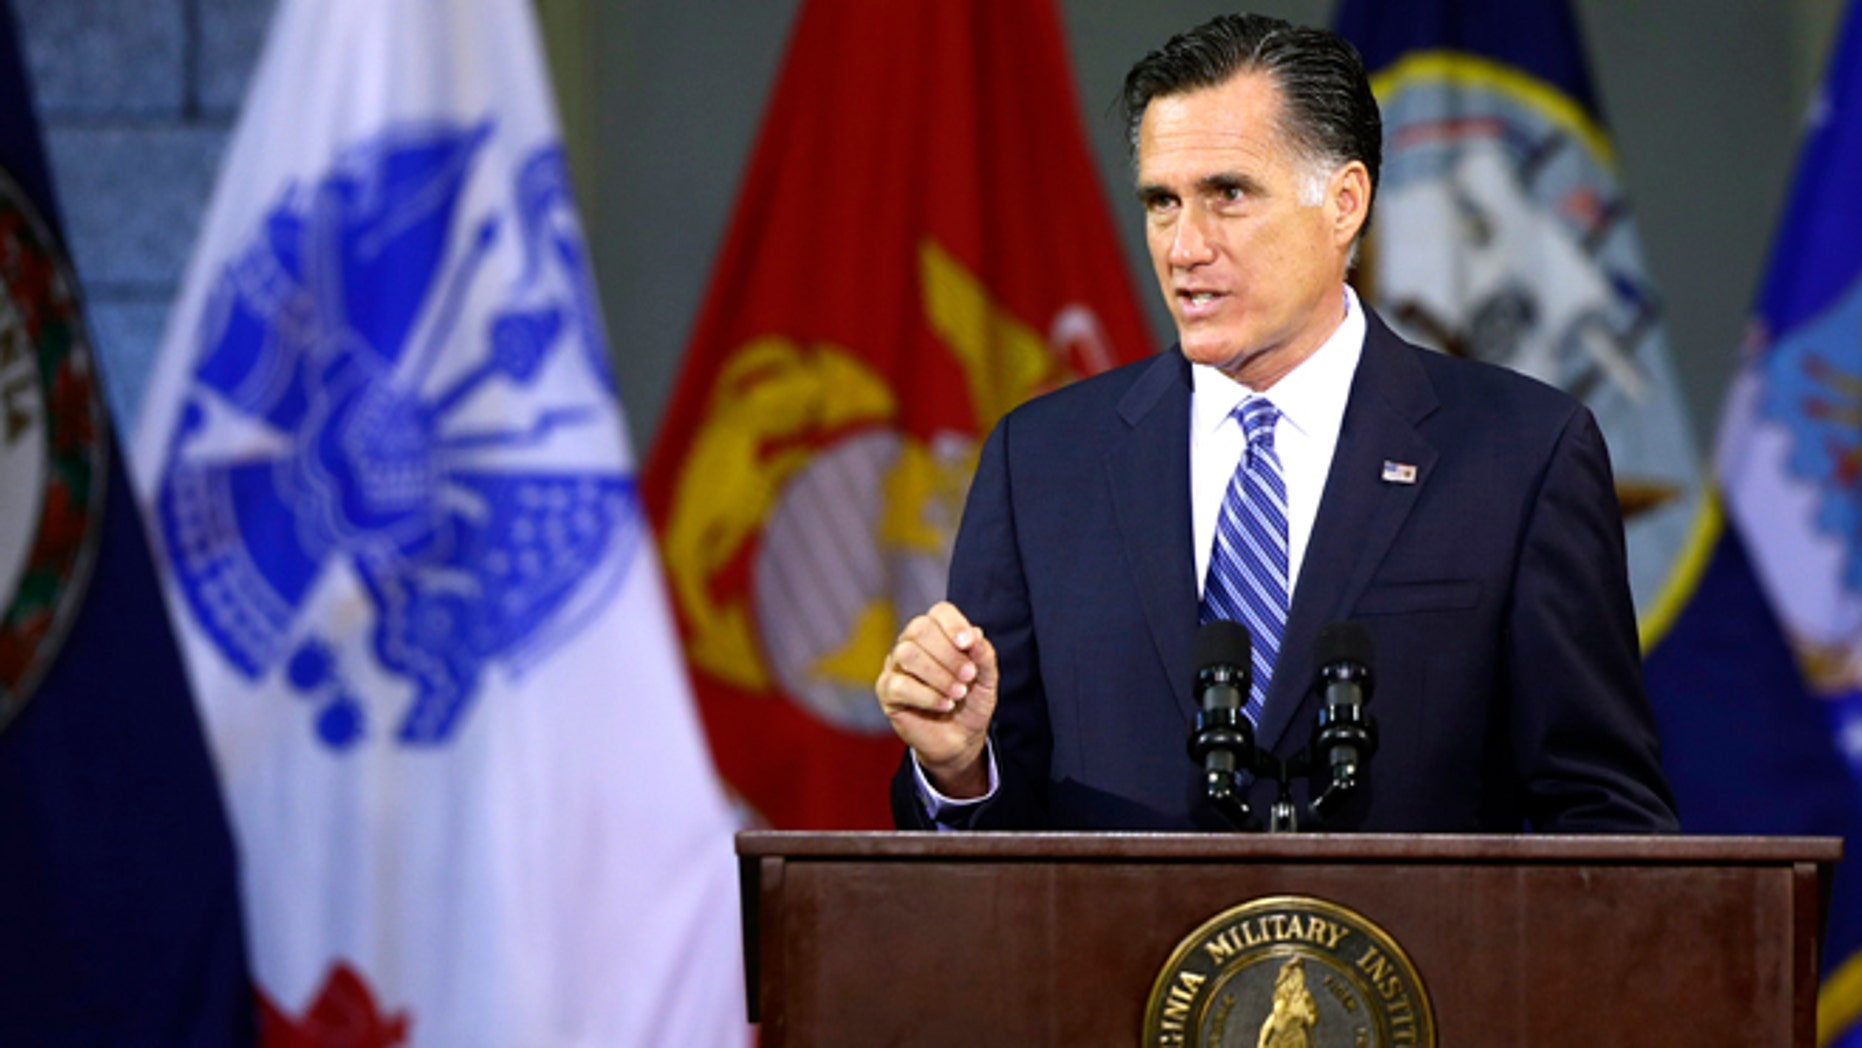 Oct. 8, 2012: Republican presidential candidate Mitt Romney delivers a foreign policy speech at Virginia Military Institute (VMI) in Lexington, Va.